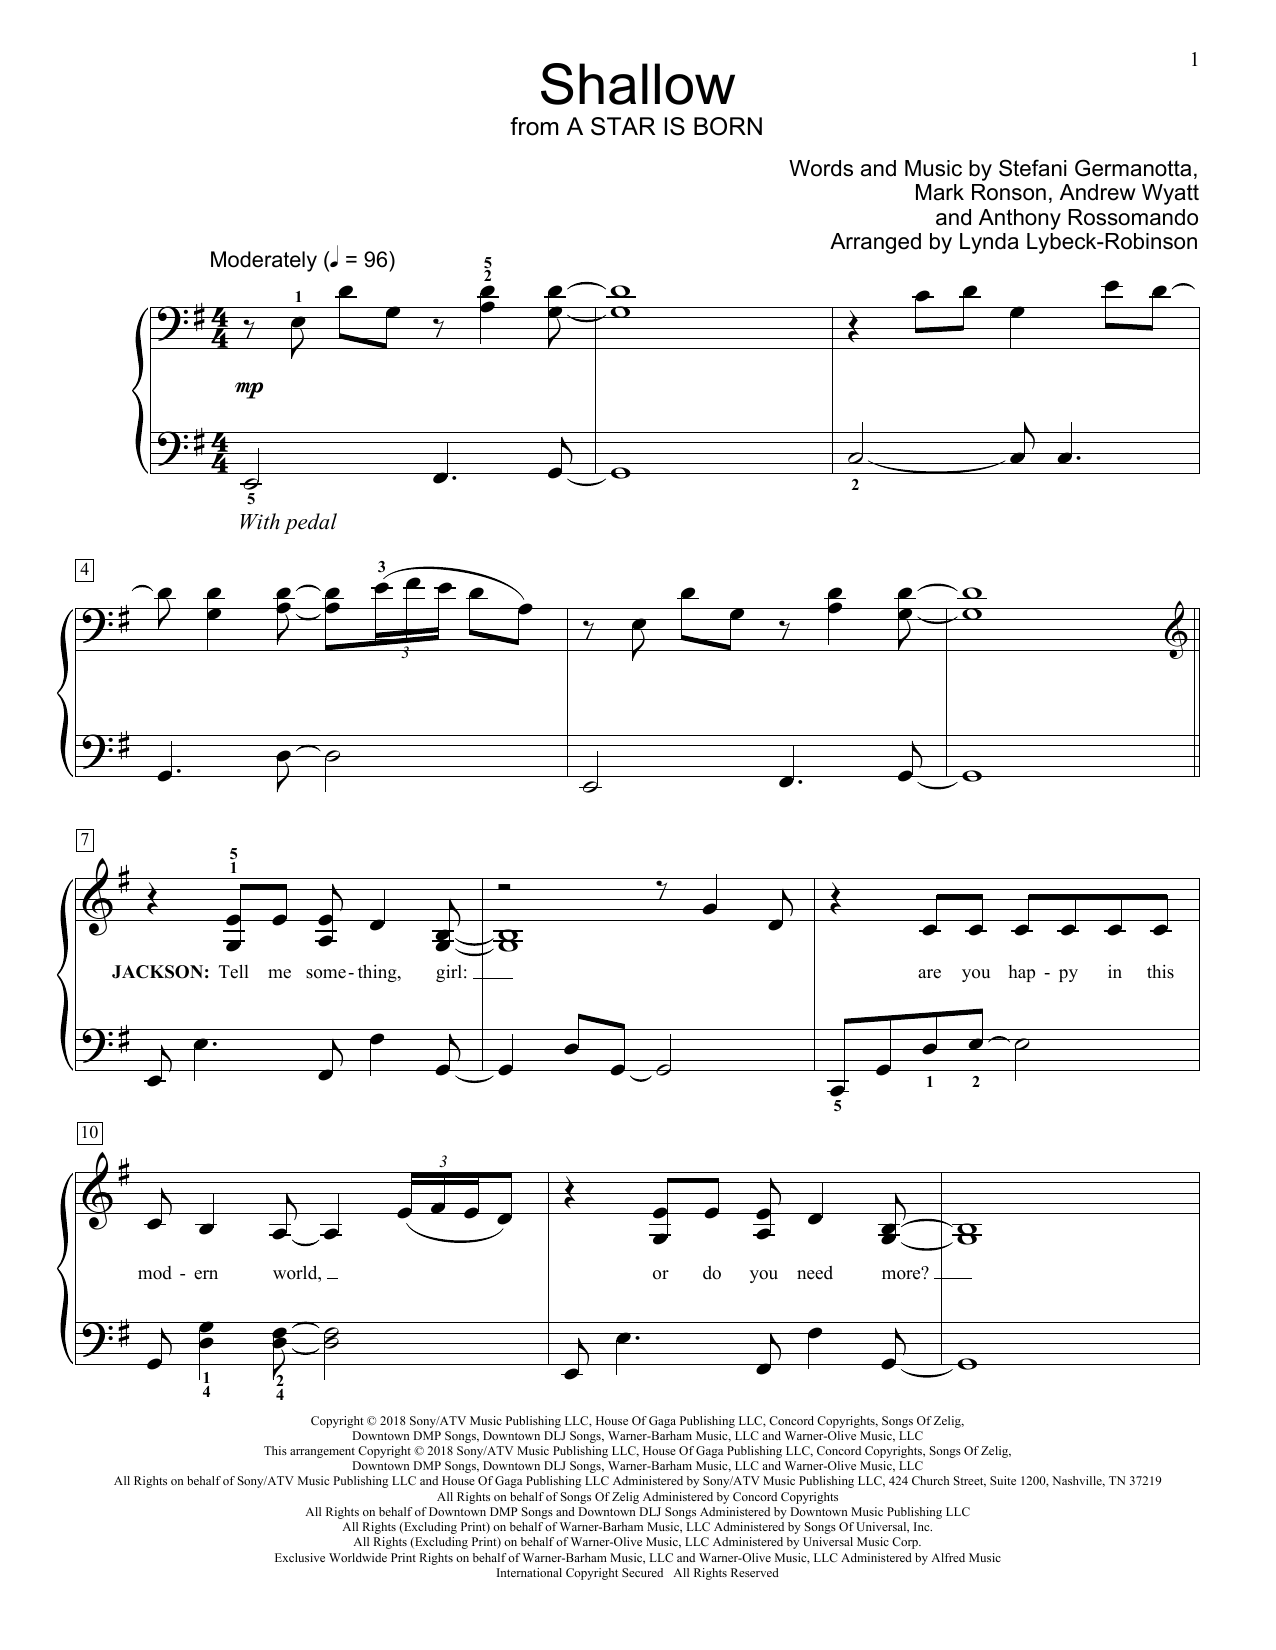 Lady Gaga & Bradley Cooper Shallow (from A Star Is Born) (arr. Lynda Lybeck-Robinson) sheet music notes and chords